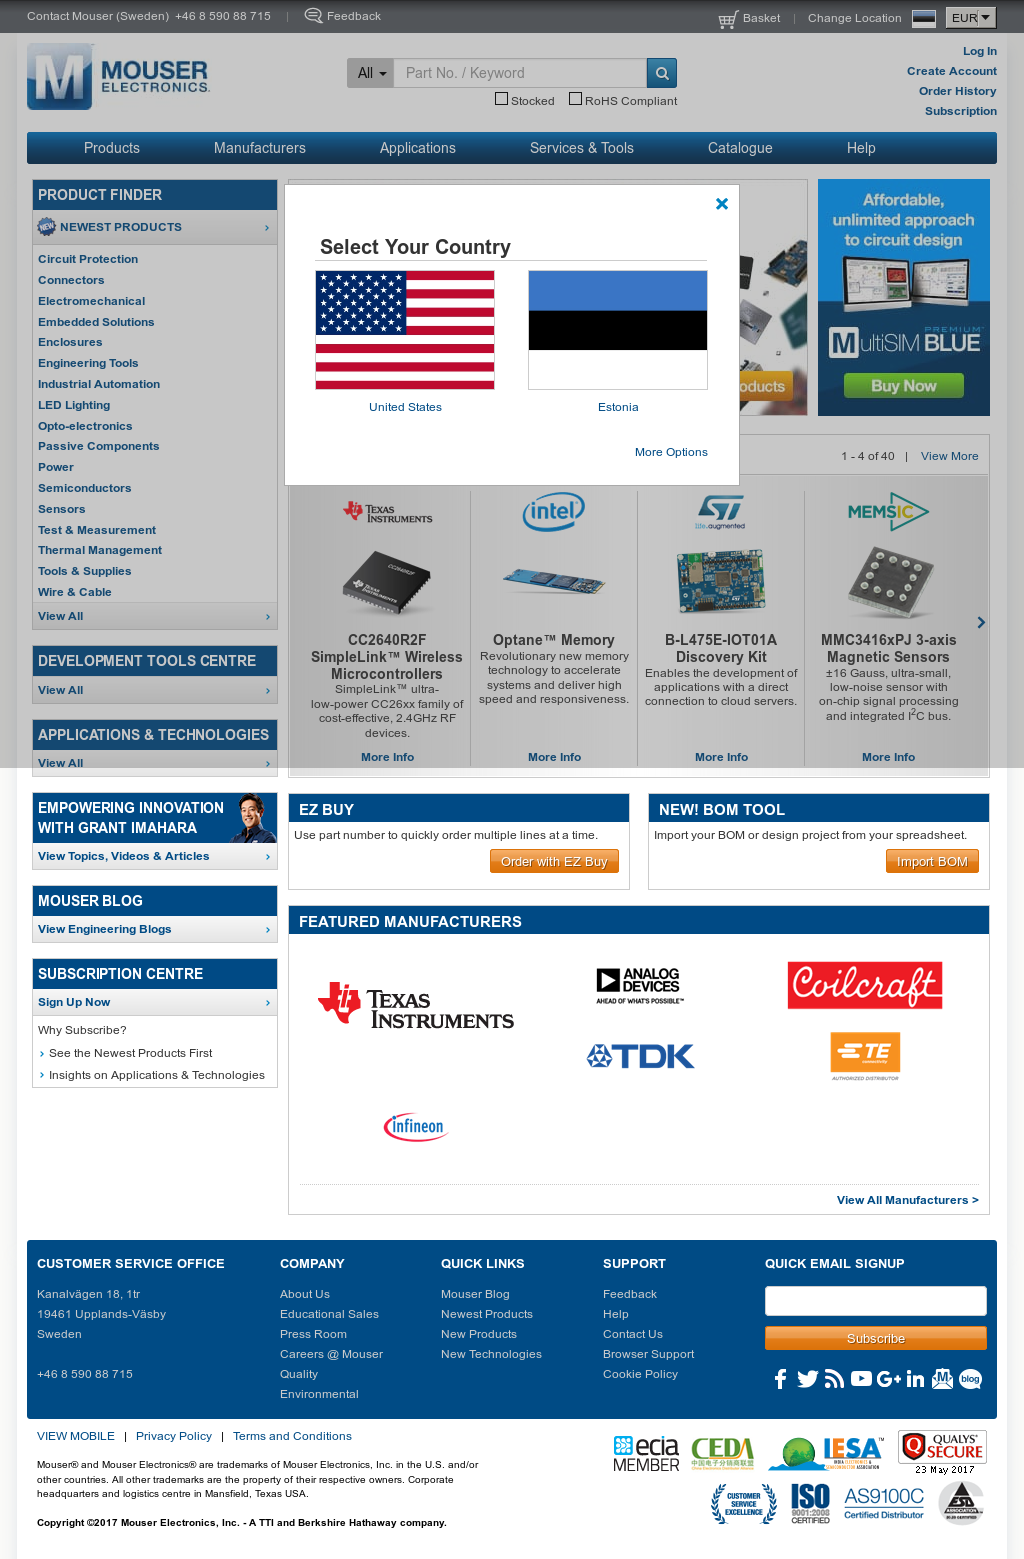 Mouser Competitors, Revenue and Employees - Owler Company Profile